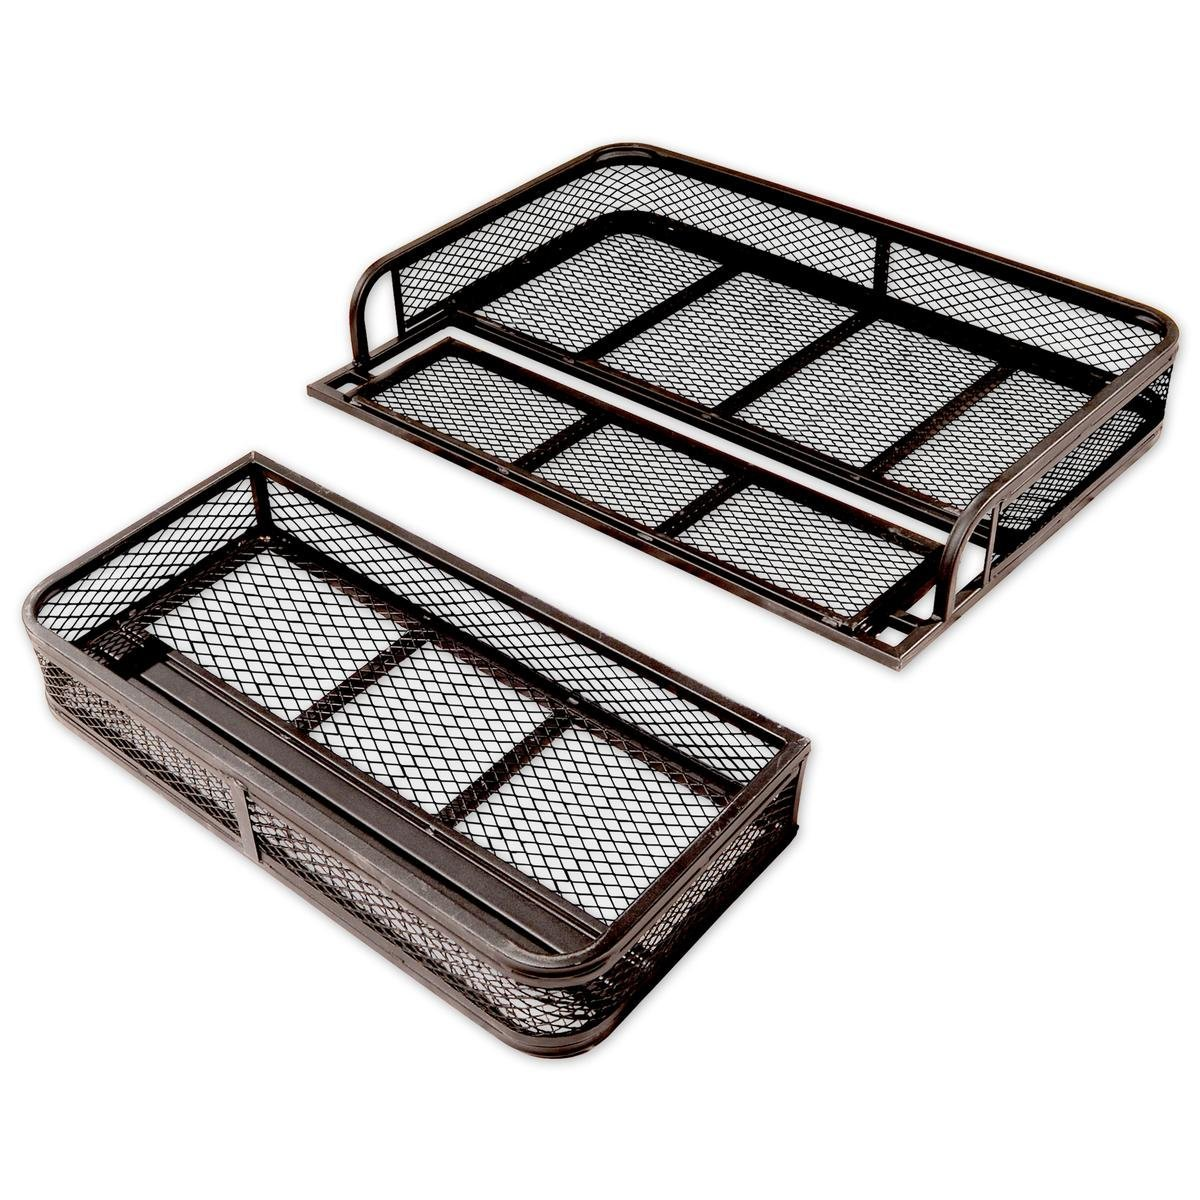 d25ae79a680a Cheap Atv Rack Basket, find Atv Rack Basket deals on line at Alibaba.com